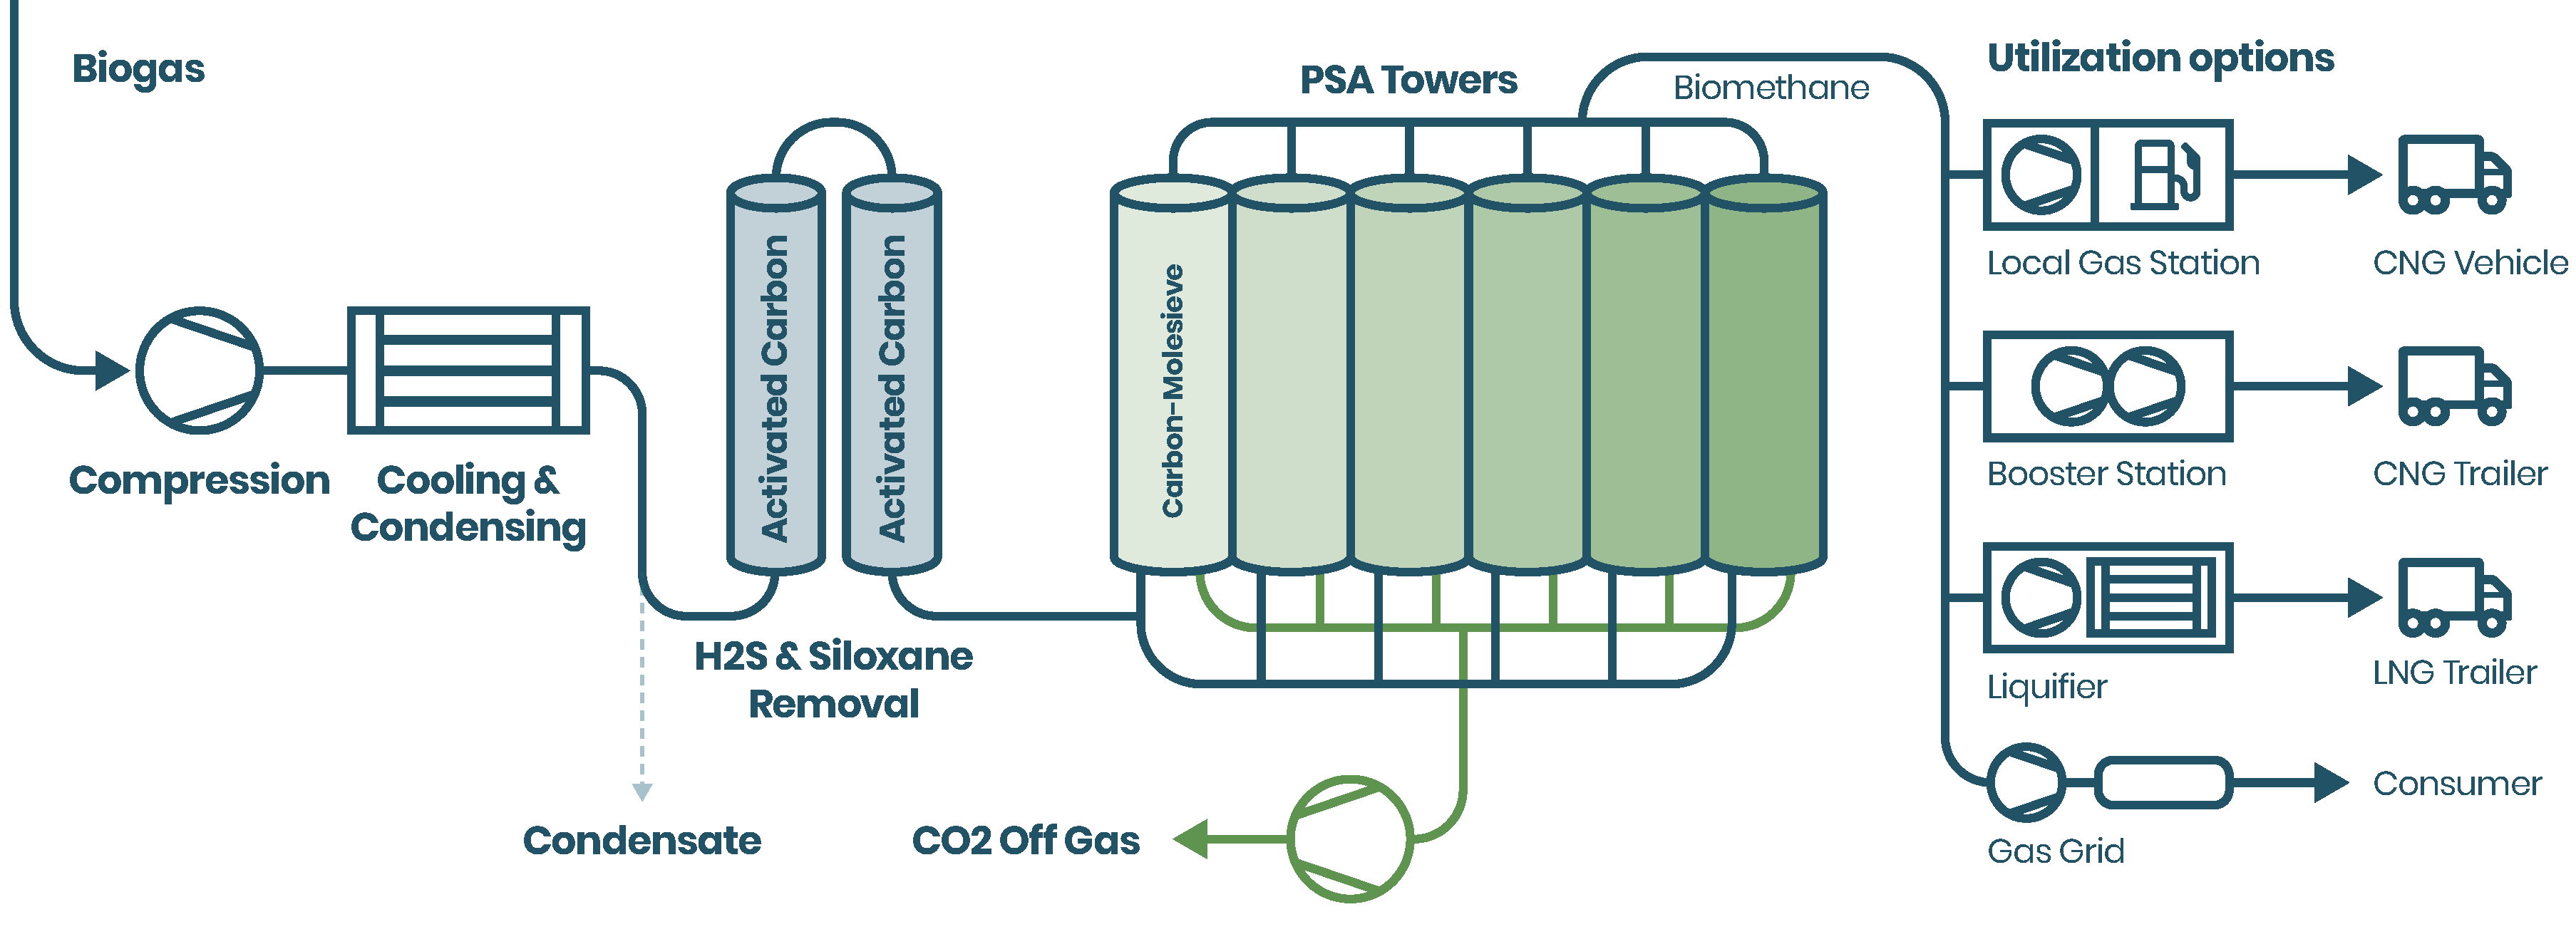 Gas purification: PSA technology flowchart. © Suomen Biovoima